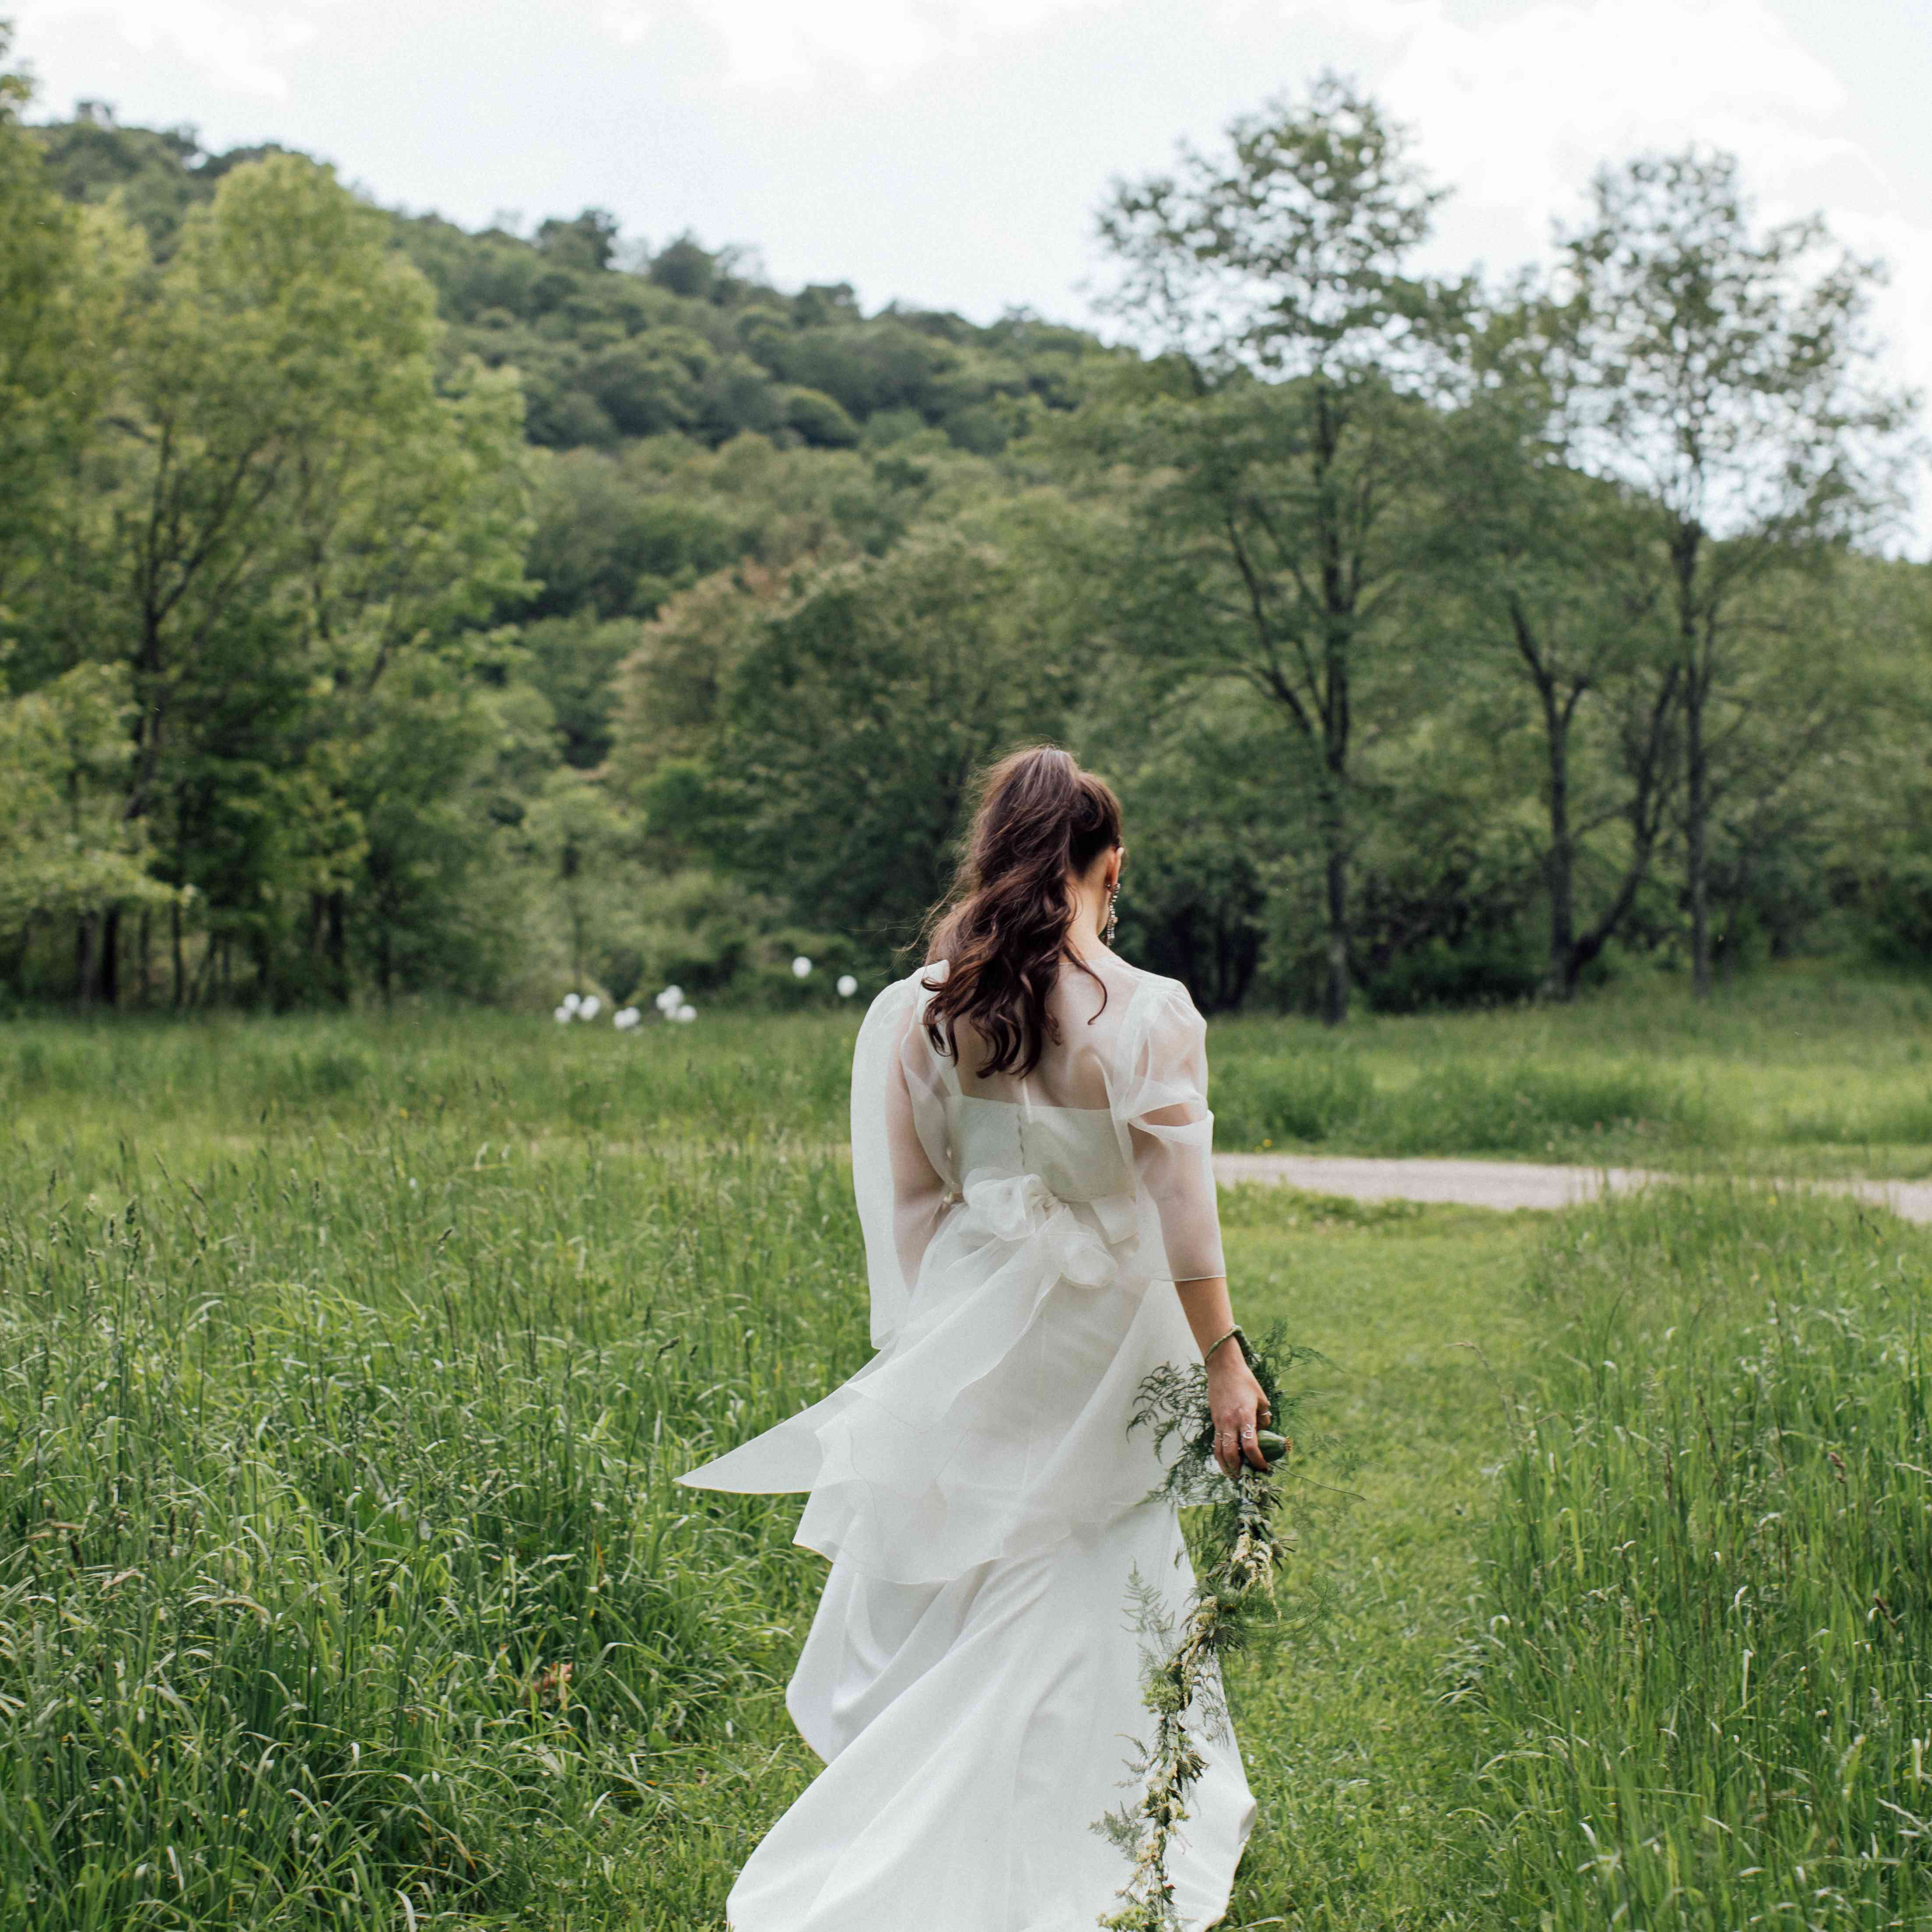 Solo bride shot from behind